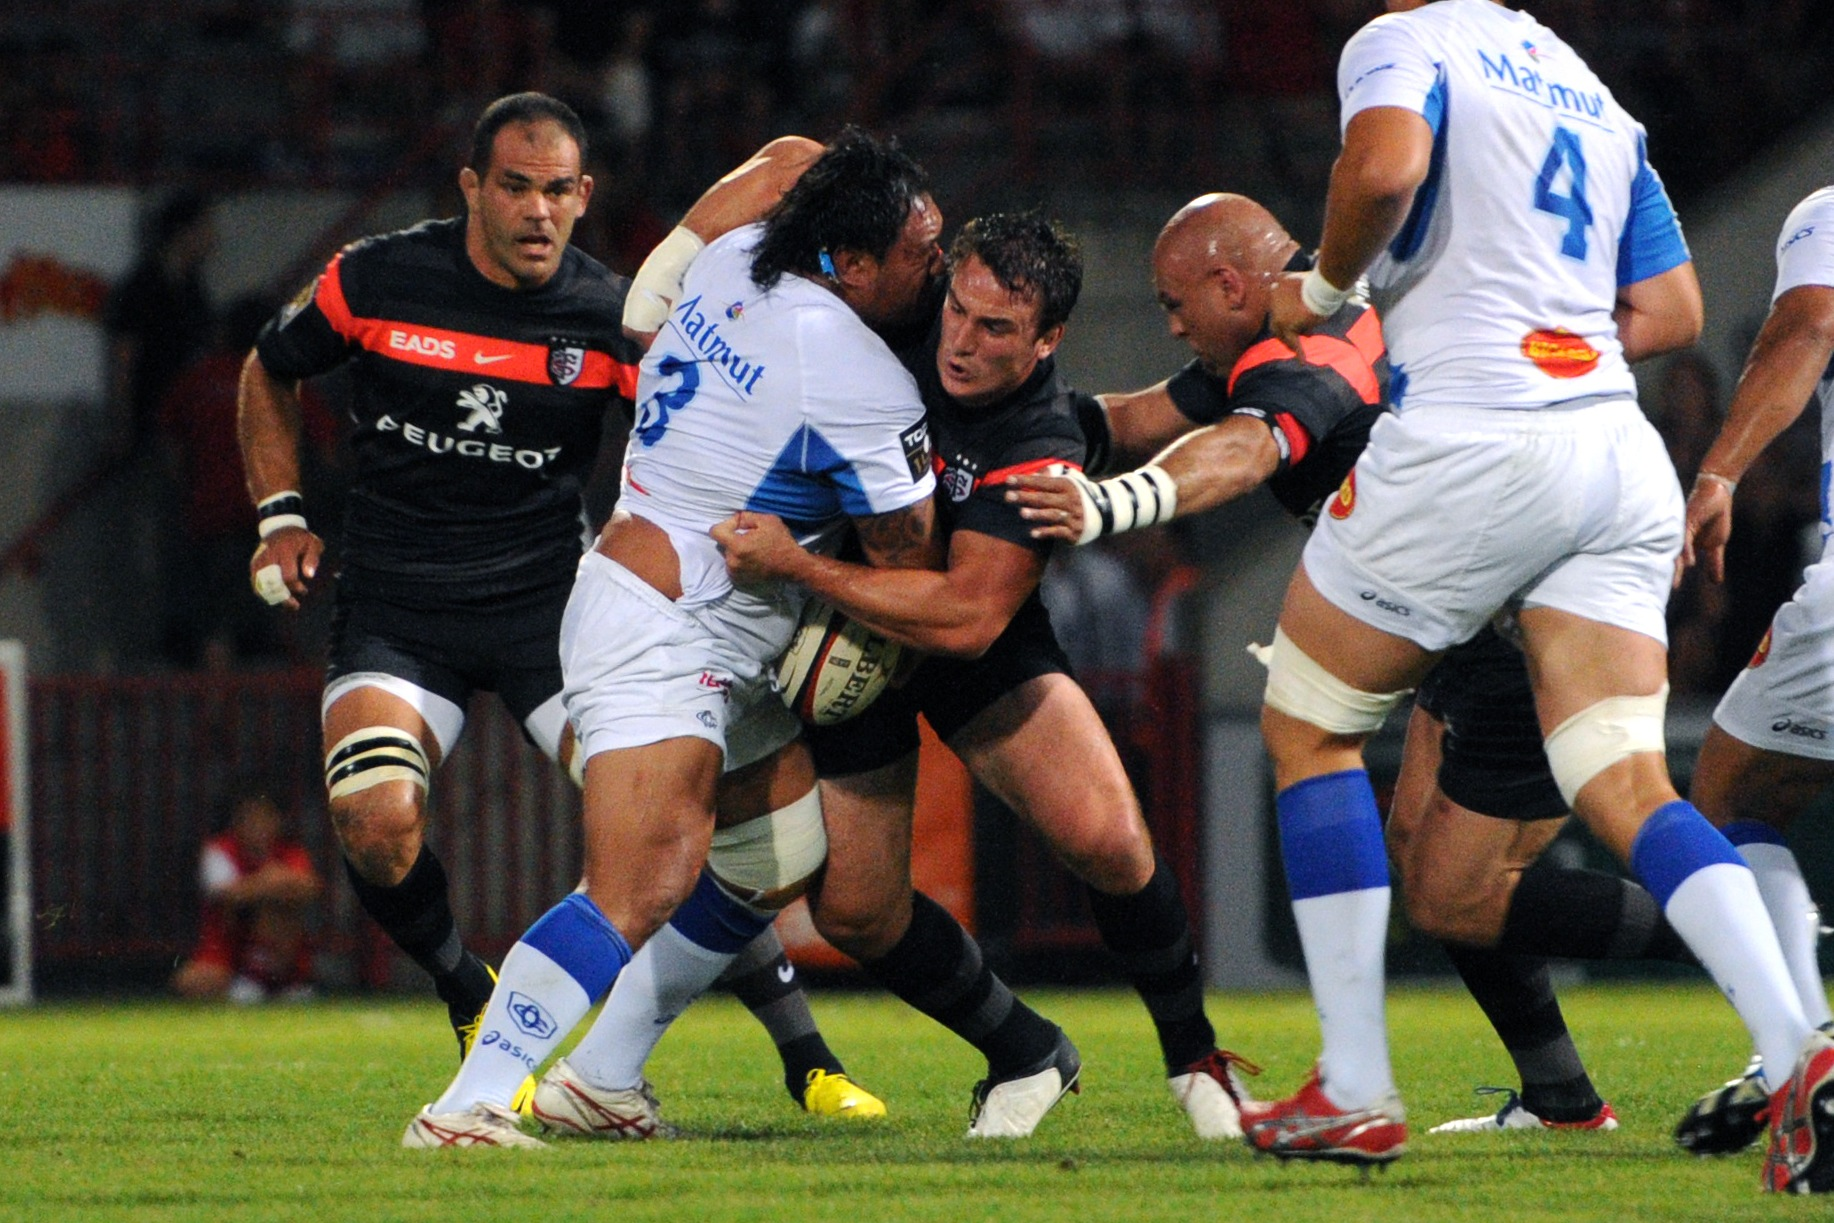 Match Rugby Toulouse Castres Olympique en direct streaming live